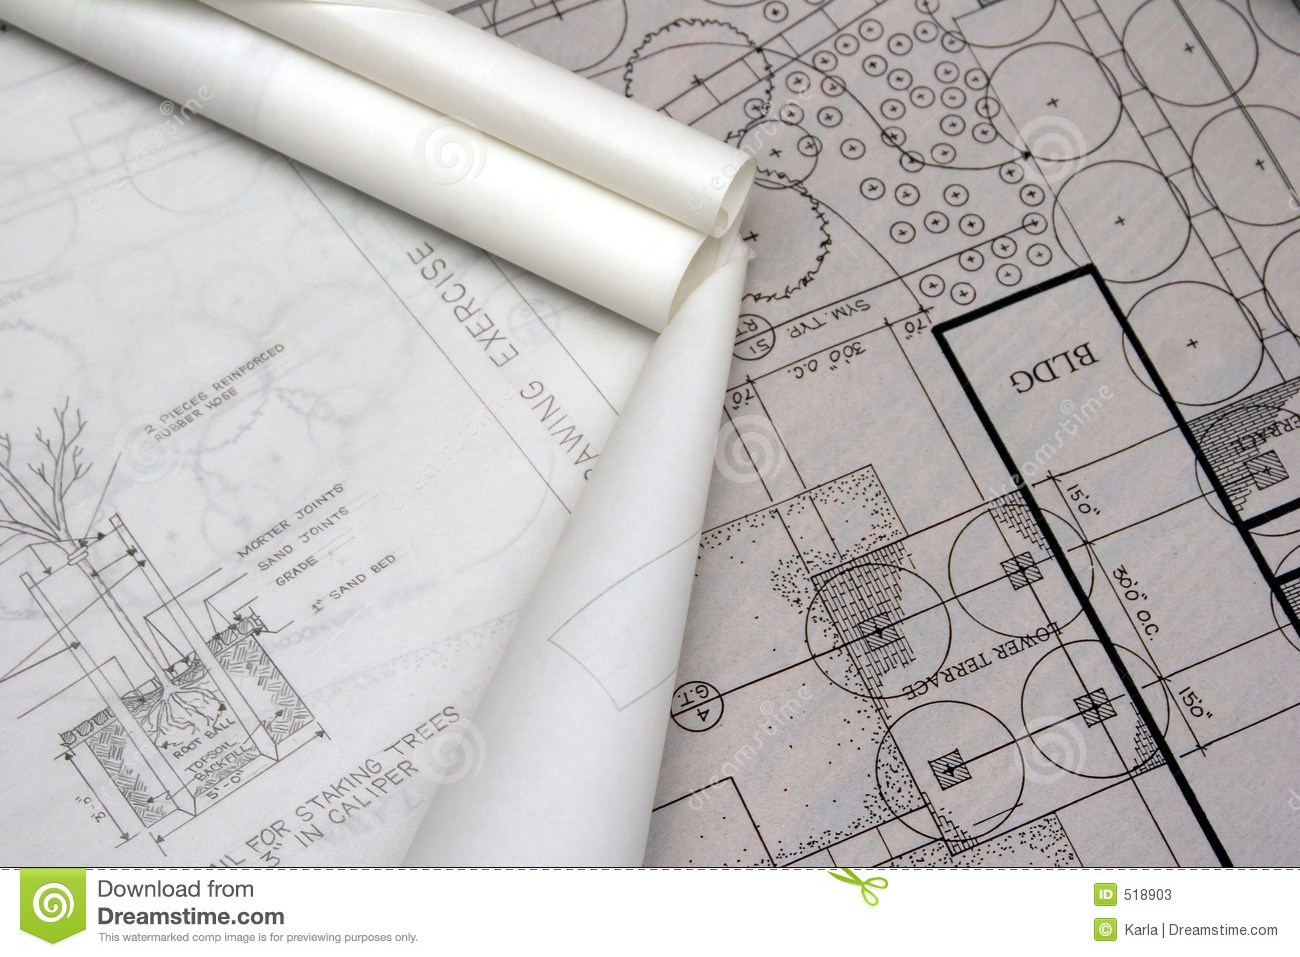 Landscape architectural drawings stock photos image 518903 for Landscape architect drawing